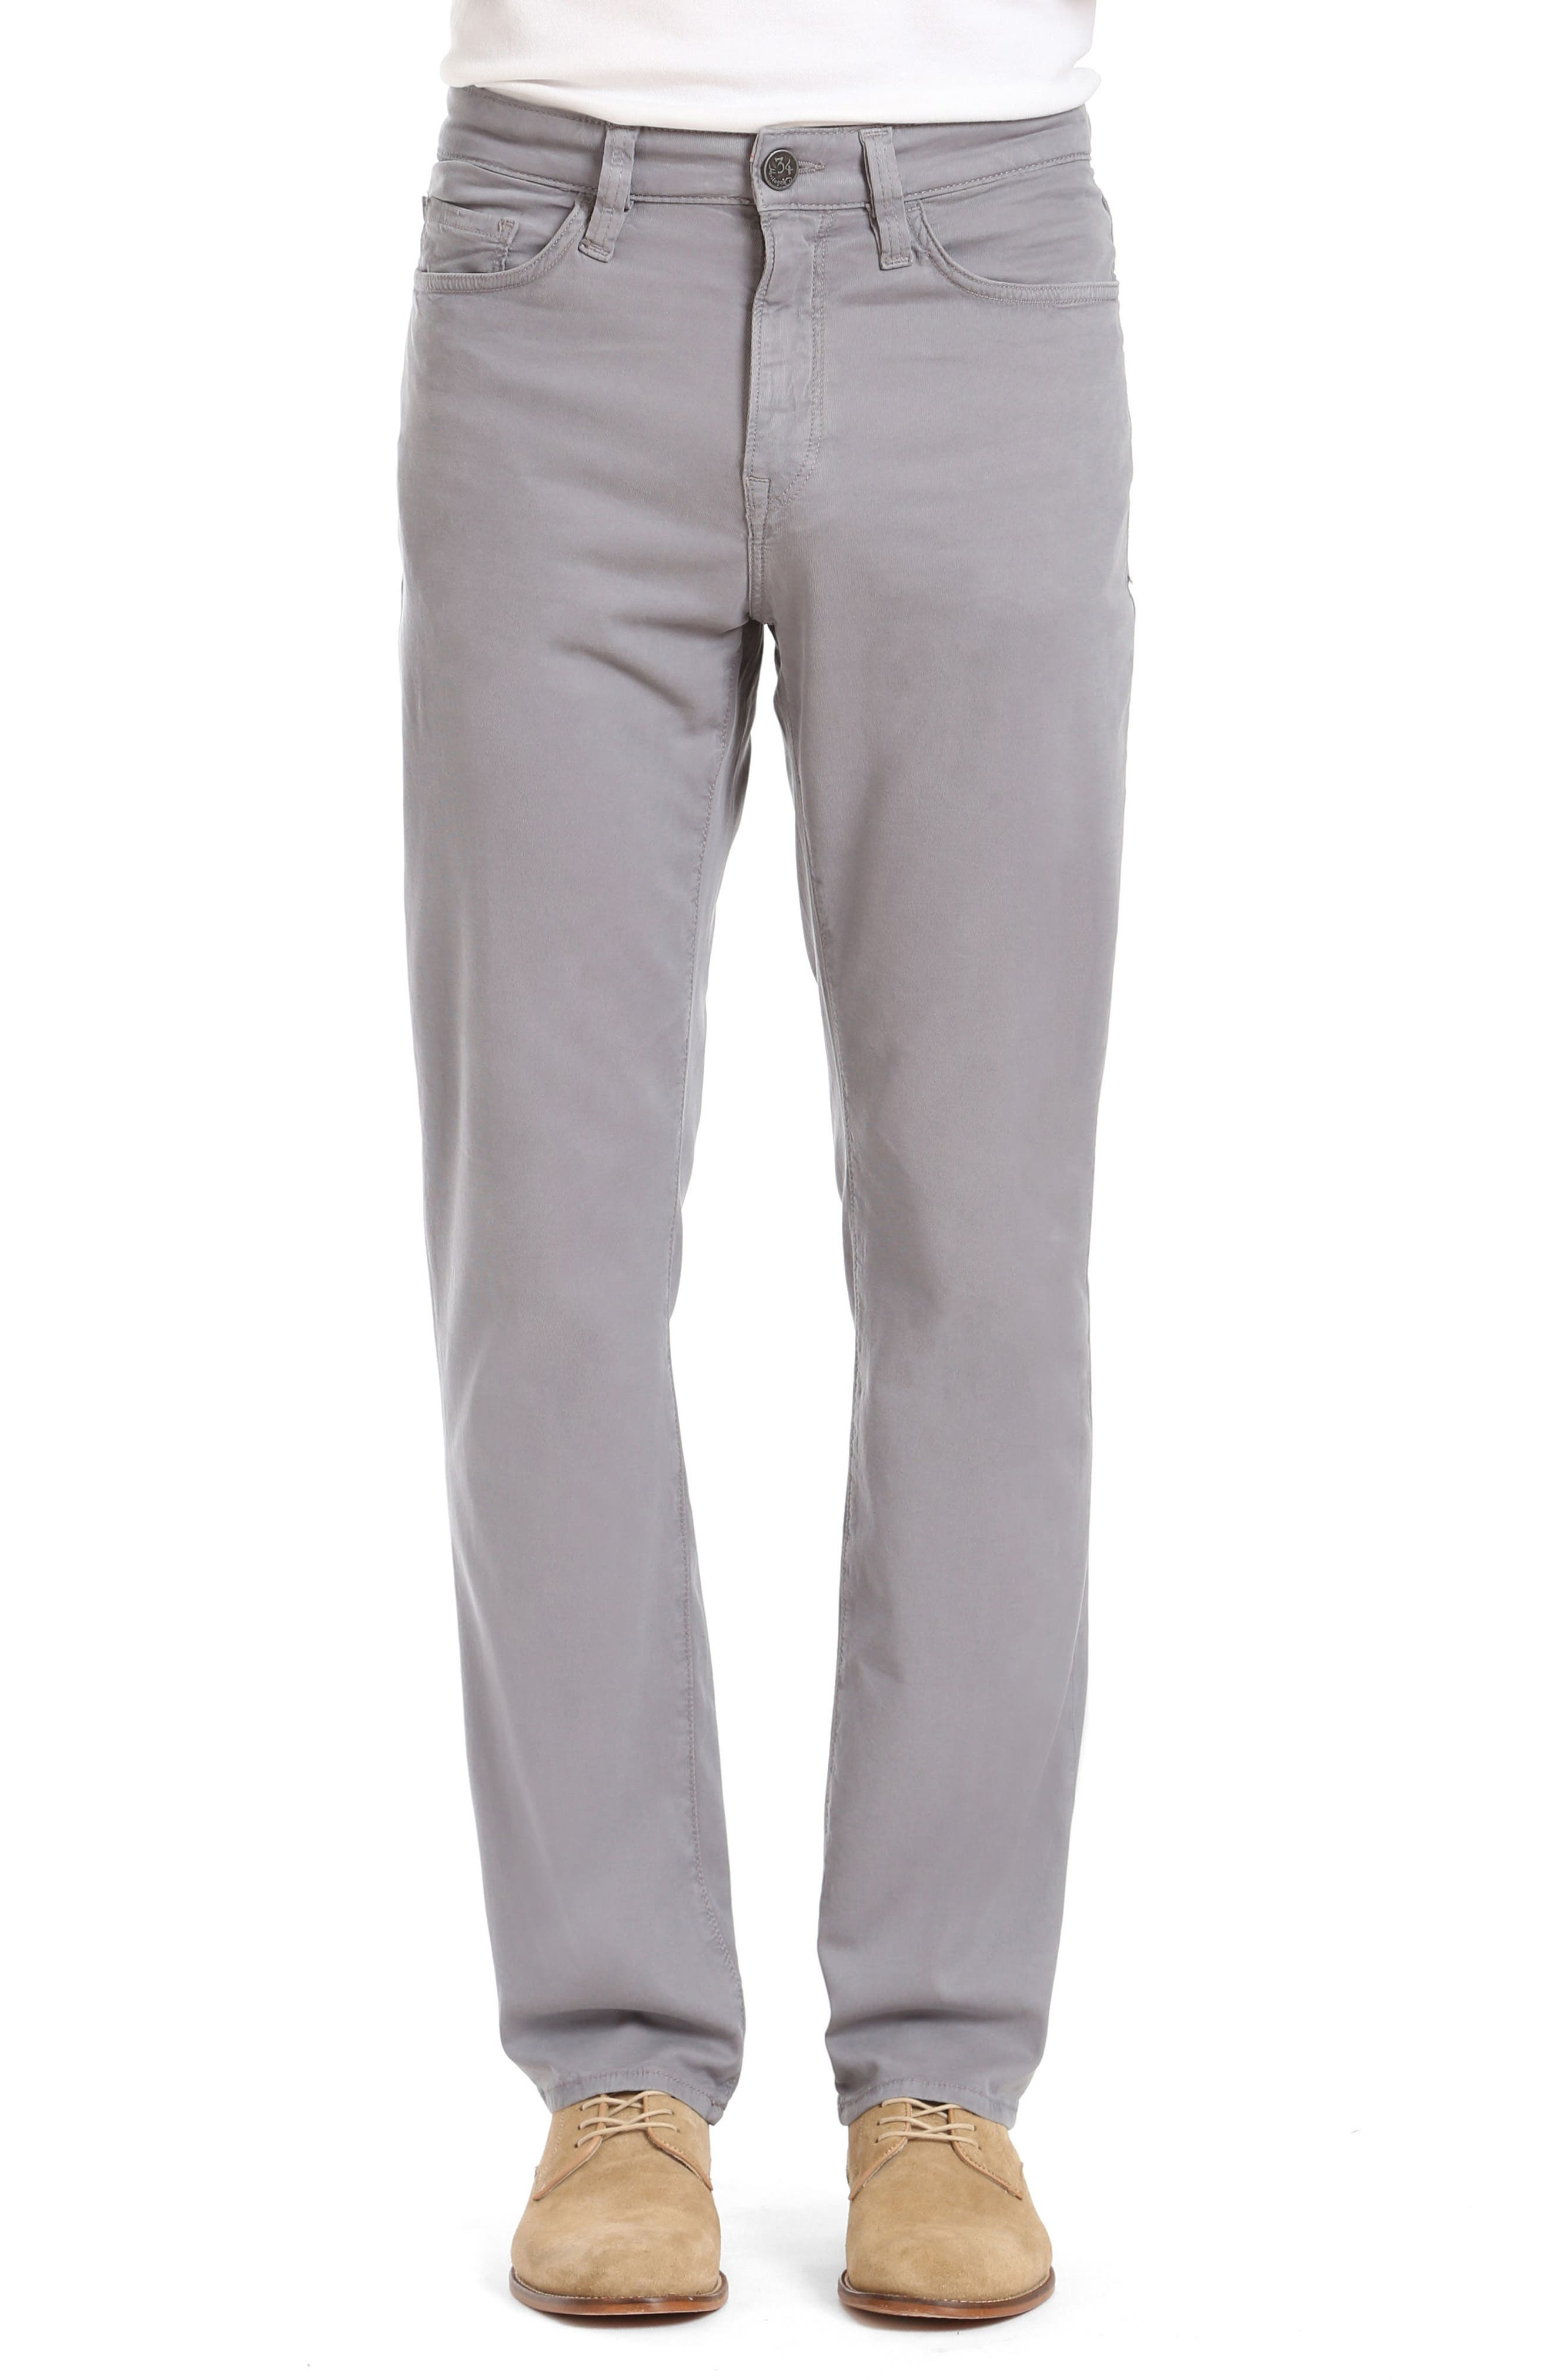 Charisma Relaxed Fit Twill Pants,                             Main thumbnail 1, color,                             Grey Fine Twill